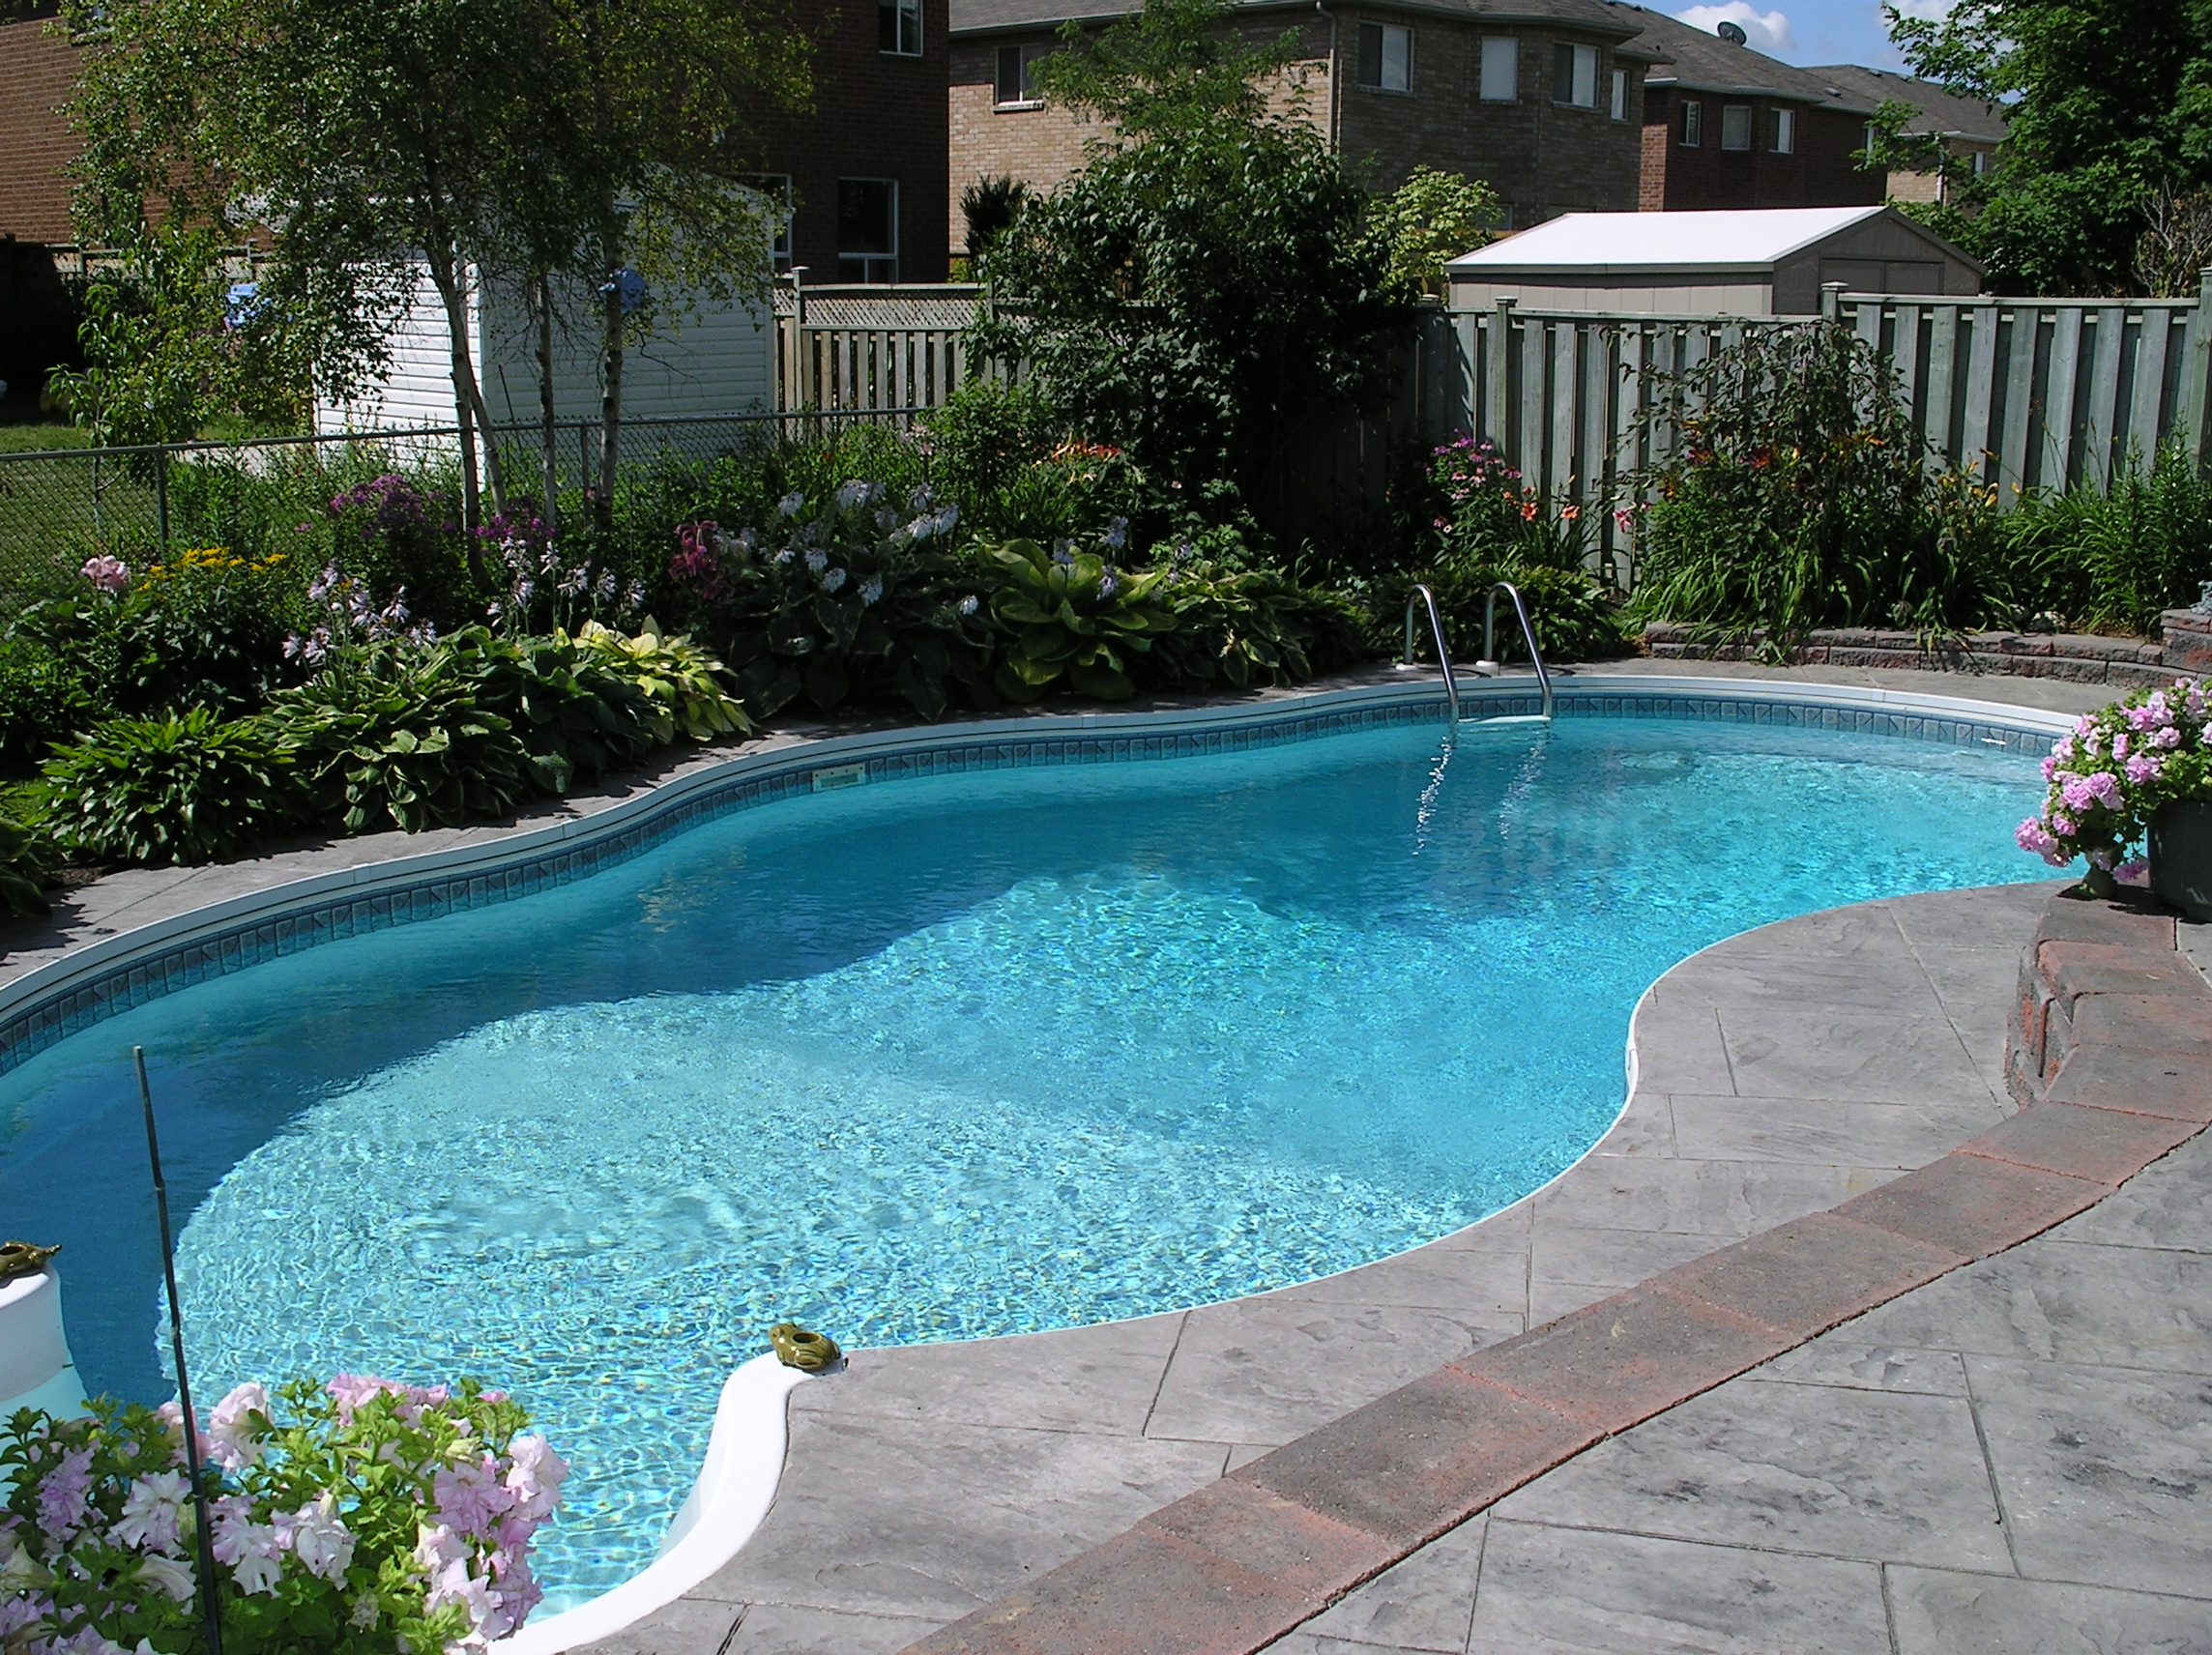 Swimming Pool Designs For Small Yards Wikipedia